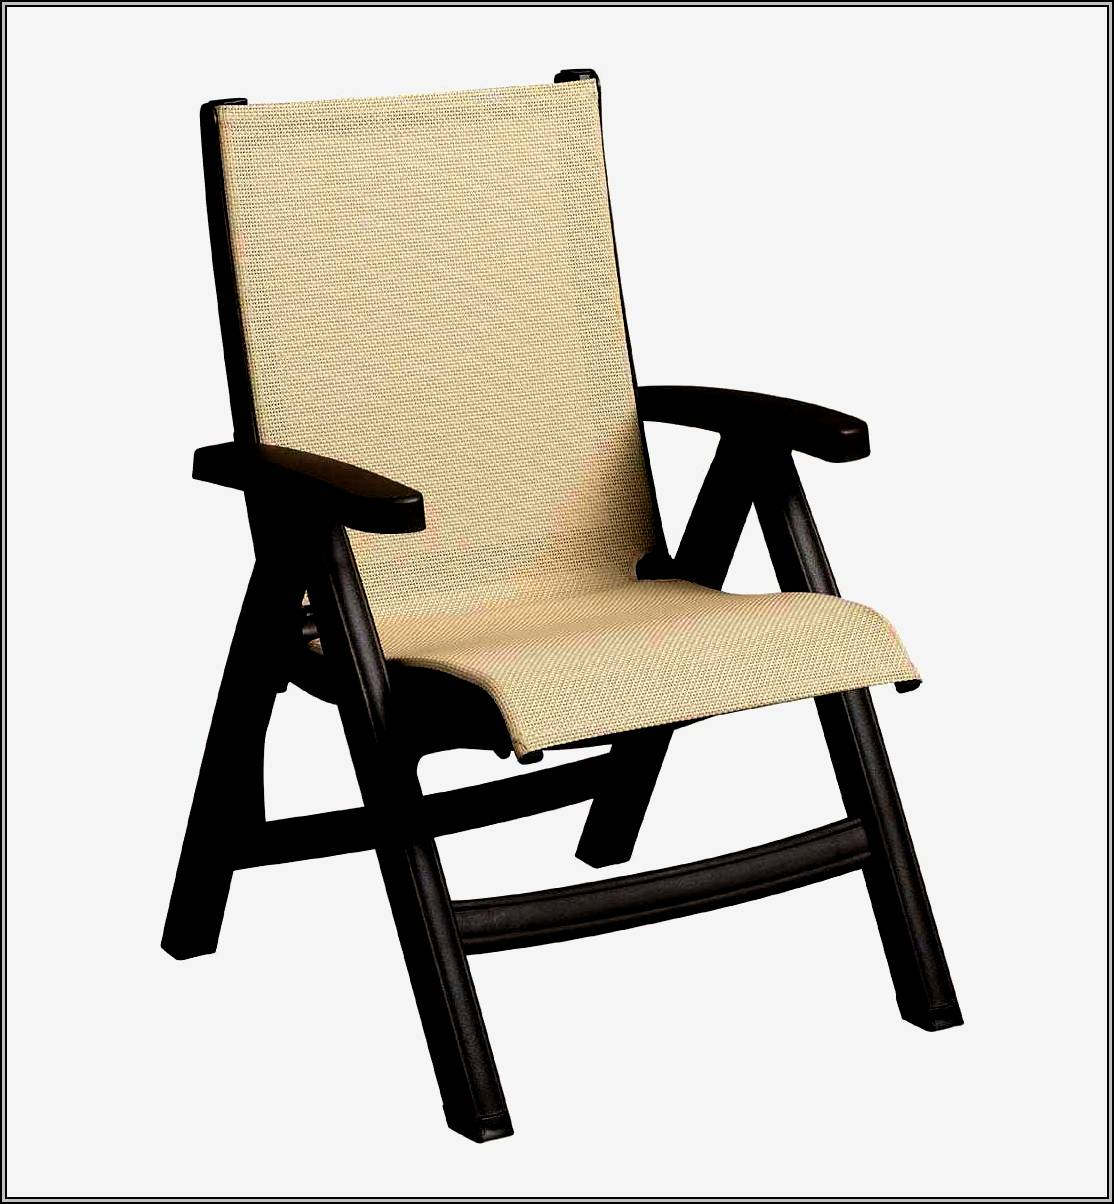 Outdoor Folding Chairs Walmart Chairs Home Design